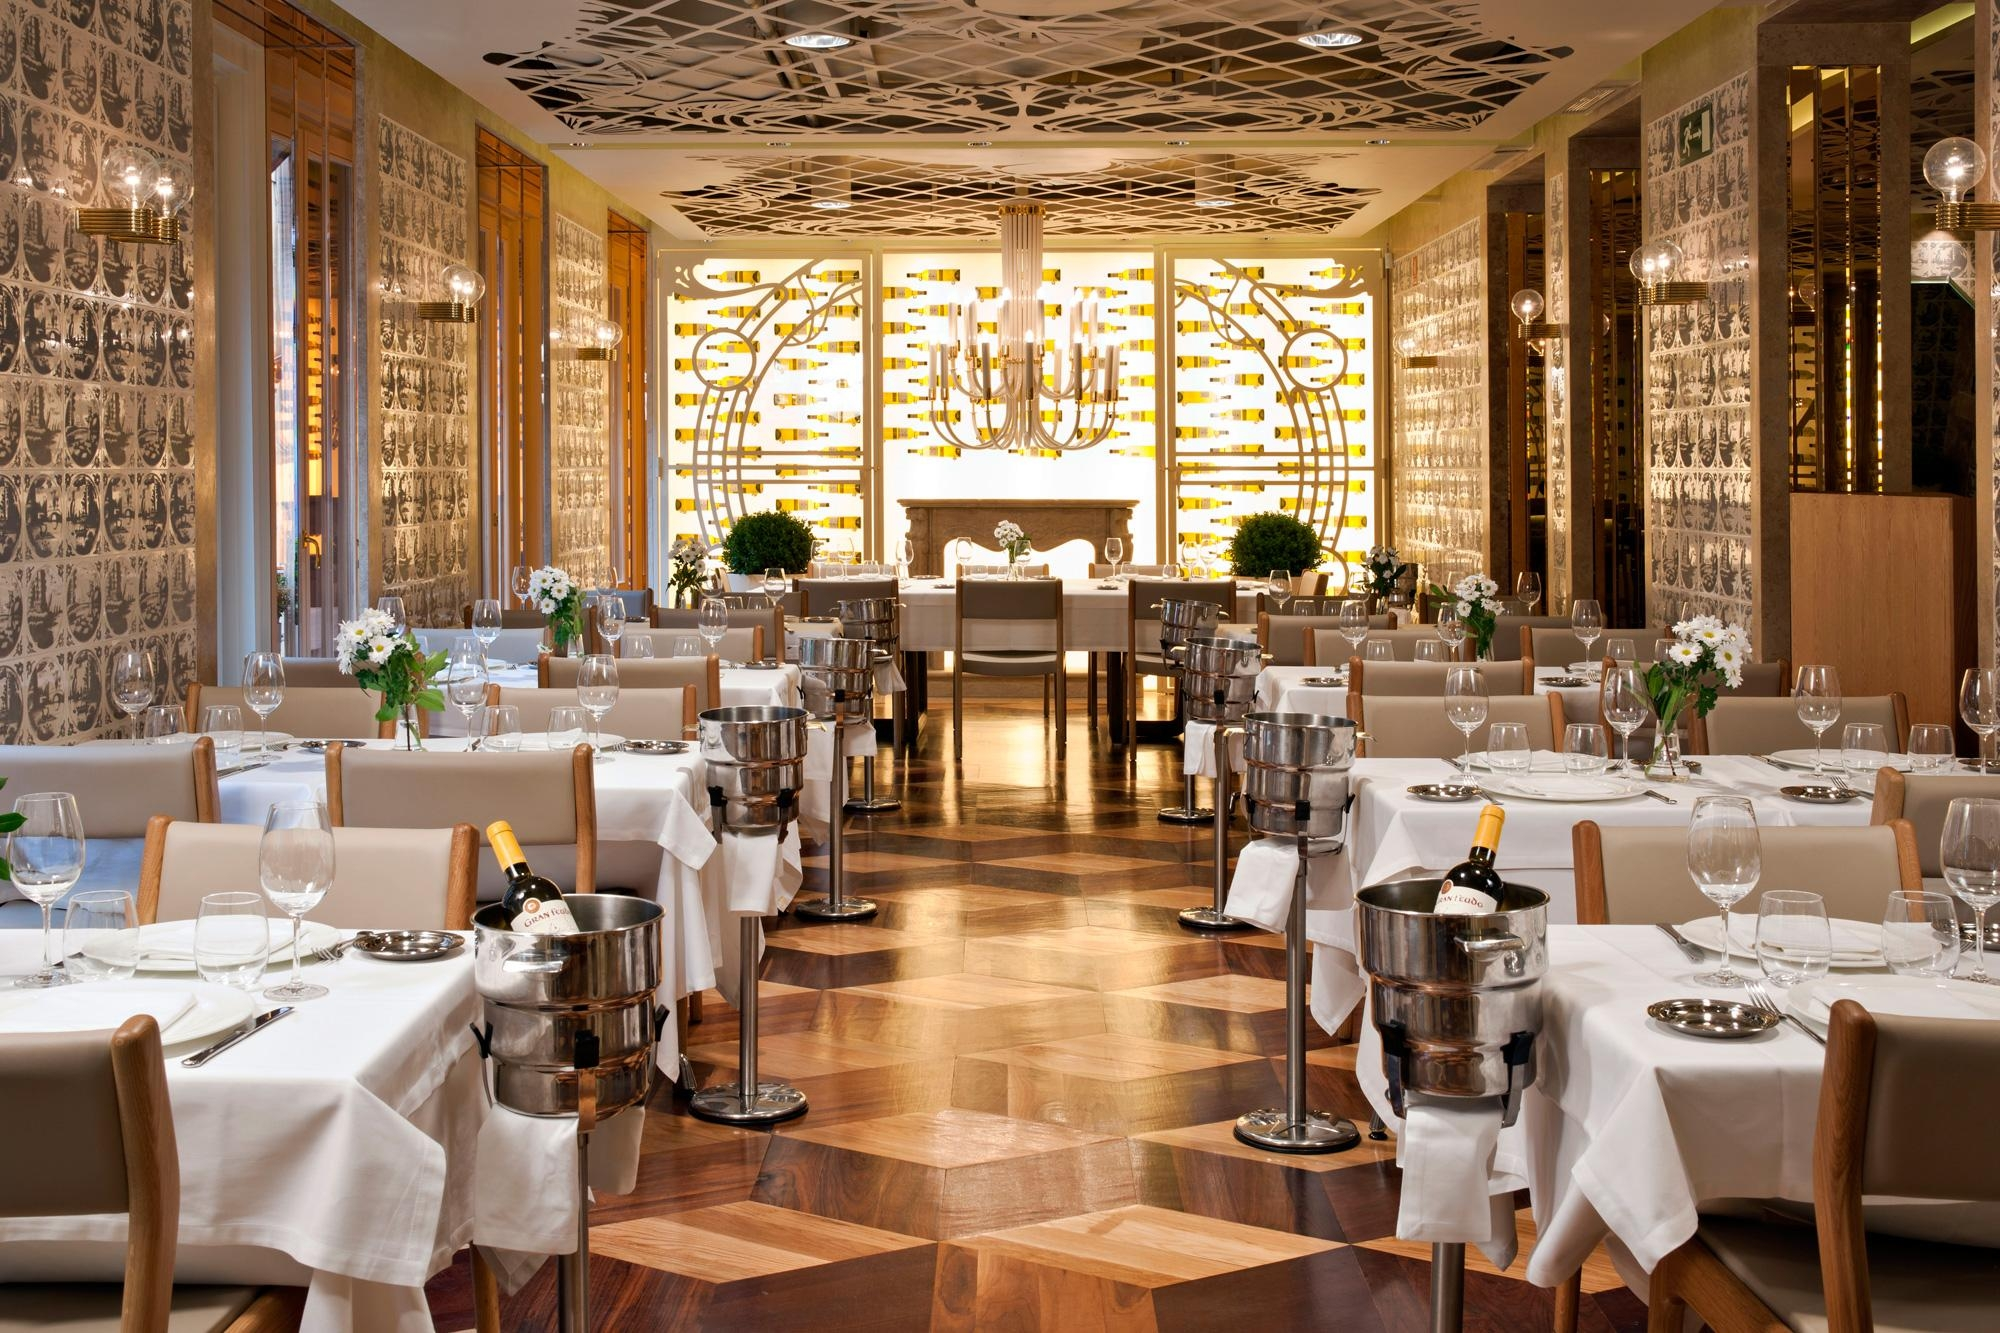 Architecture Artistic Home Interior Design Fantastic Restaurant Within Art Nouveau Wall Decals (View 3 of 20)